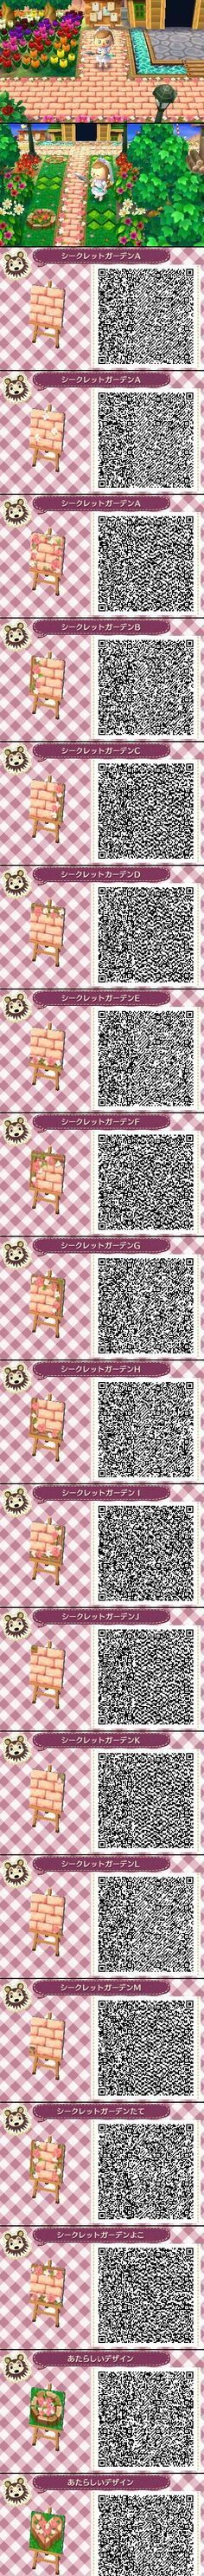 Bamboo Acnl Inspirational Animal Crossing New Leaf Qr Codes Pink Stone Path Clic. Bamboo Acnl Inspirational Animal Crossing New Leaf Qr Codes Pink Stone Path Click Through for Post Animal, My Animal, Animal Crossing New Leaf Qr Codes, Acnl Qr Code Sol, Acnl Pfade, Pierre Rose, Acnl Paths, Brick Path, Wood Path